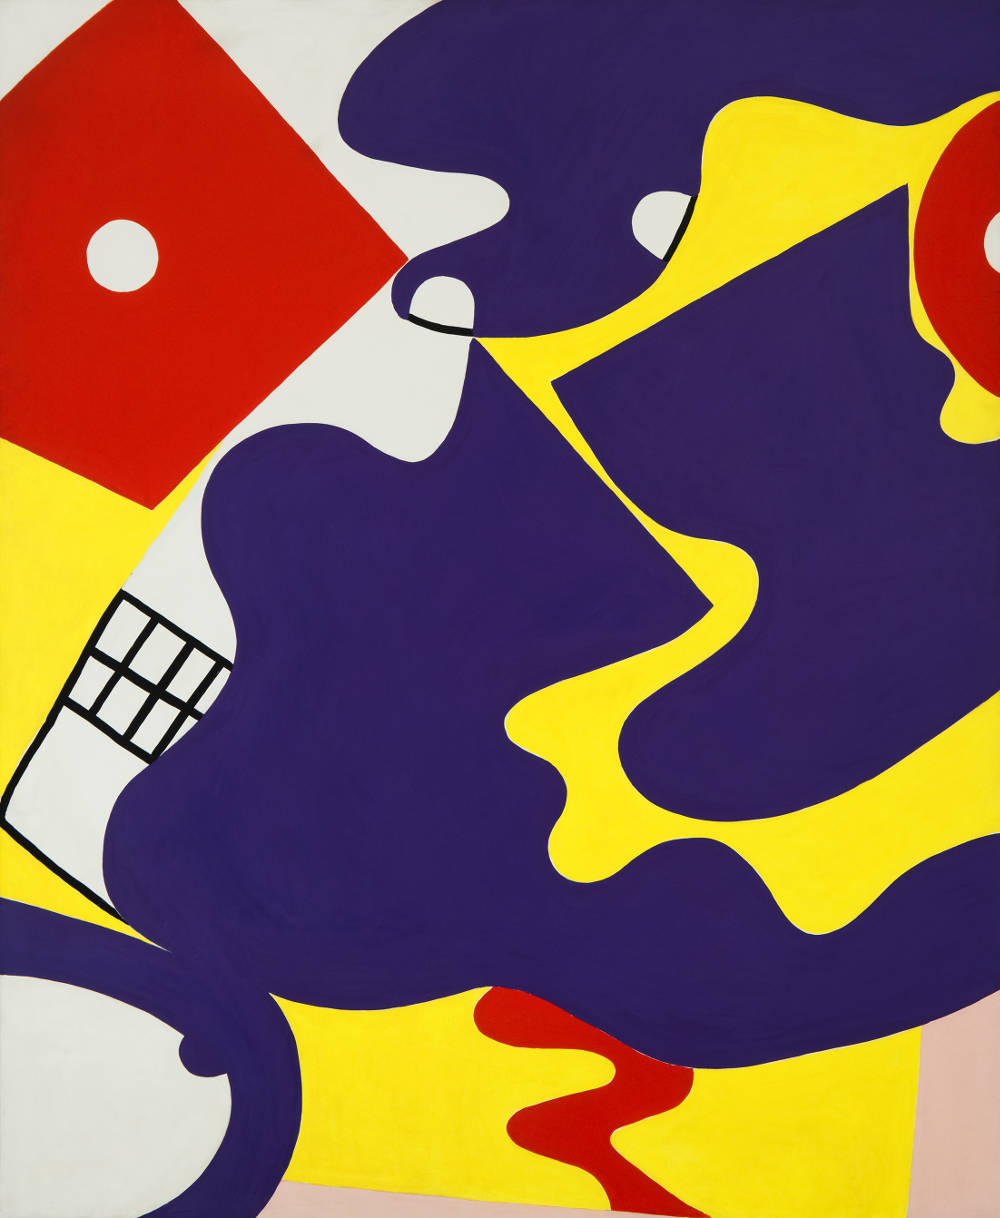 Knox Martin (b. 1923), She no.1, 1972. Signed and inscribed verso: Knox Martin / Woman's Face / Purple Breasts. Acrylic on canvas 90 x 74 inches